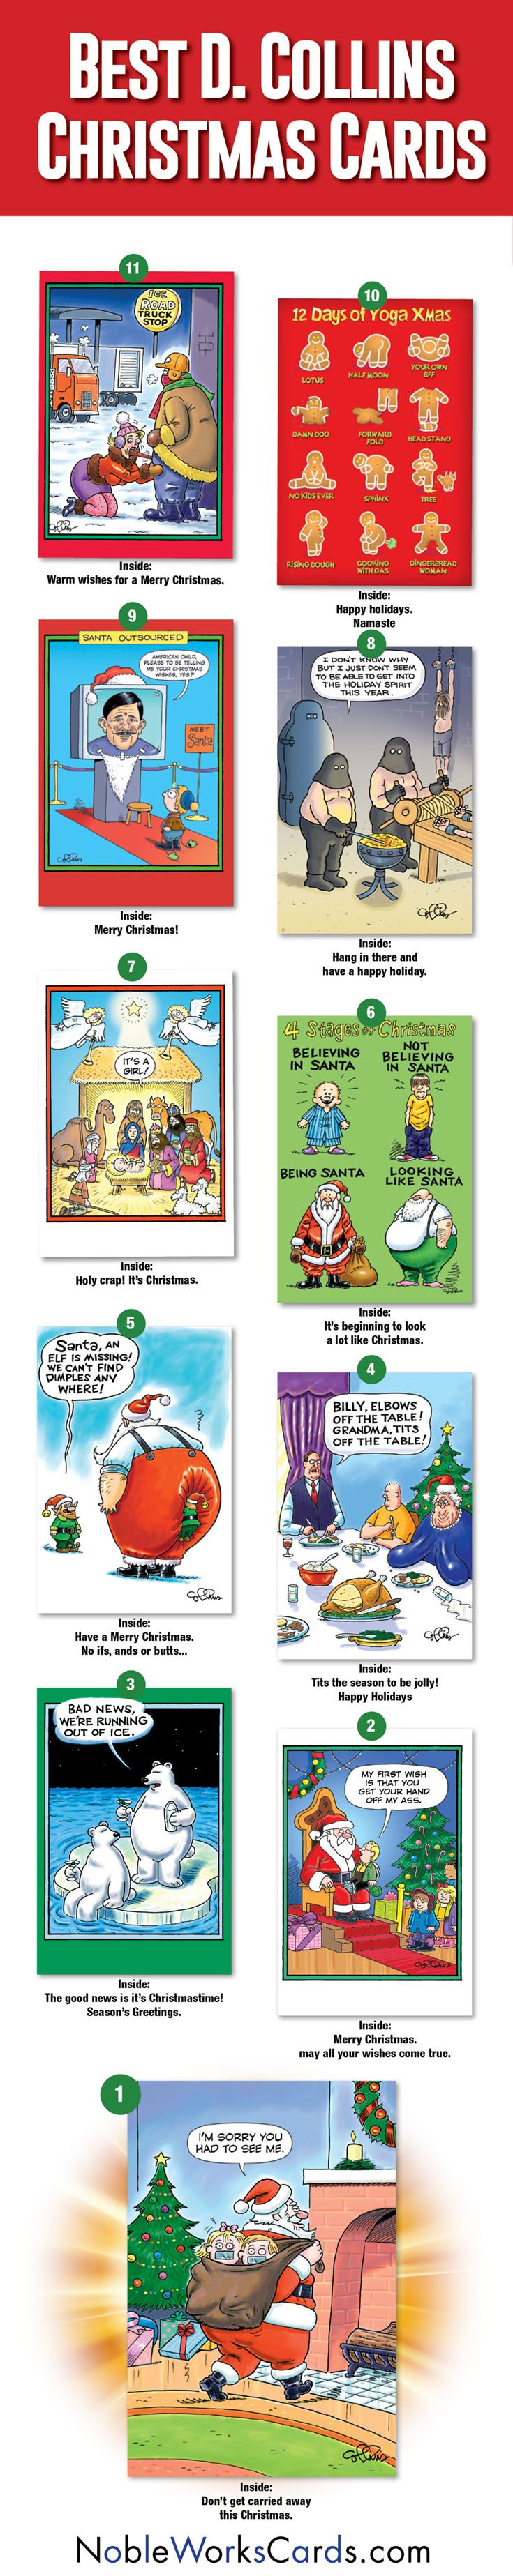 Top 10 Dan Collins Christmas Cards! Make your Holiday Cards funny this year! #humor #funny #top10 #art